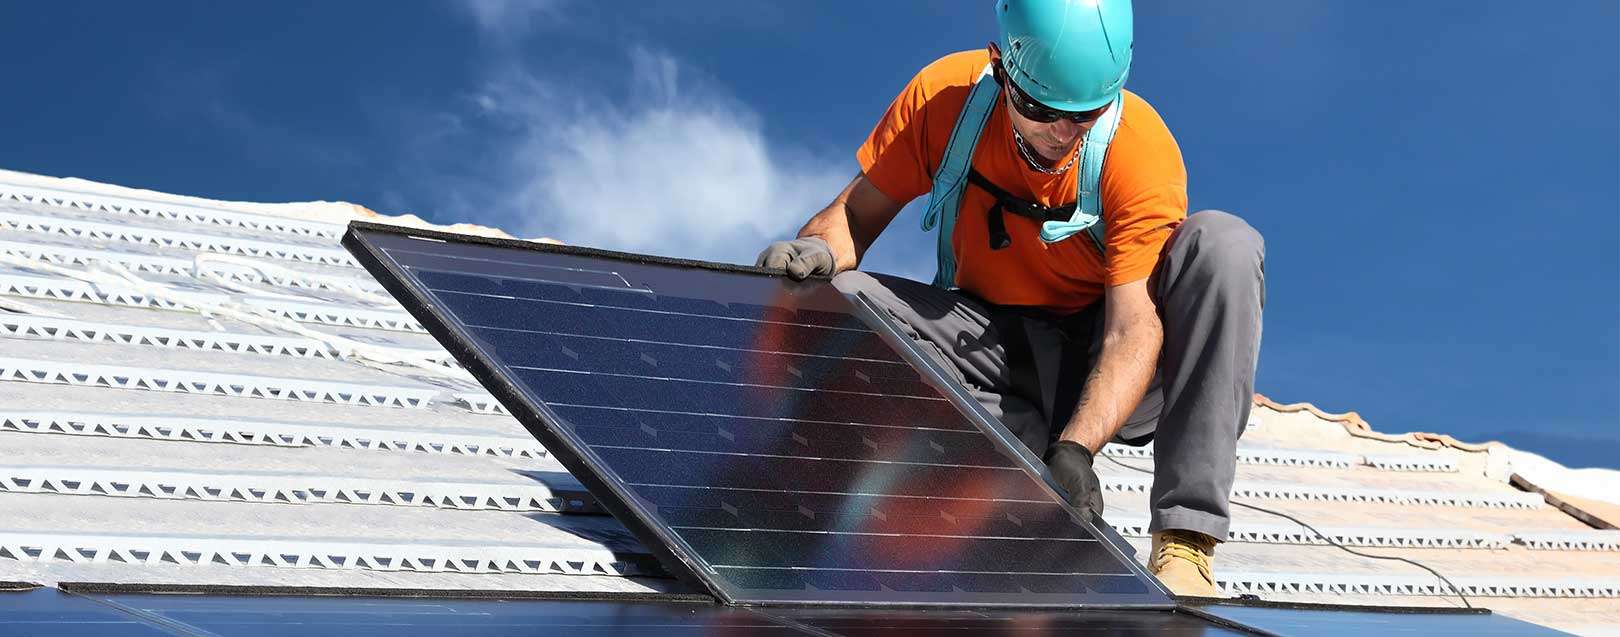 Solar panels imported into India from China, Malaysia, Taiwan under DGAD scanner